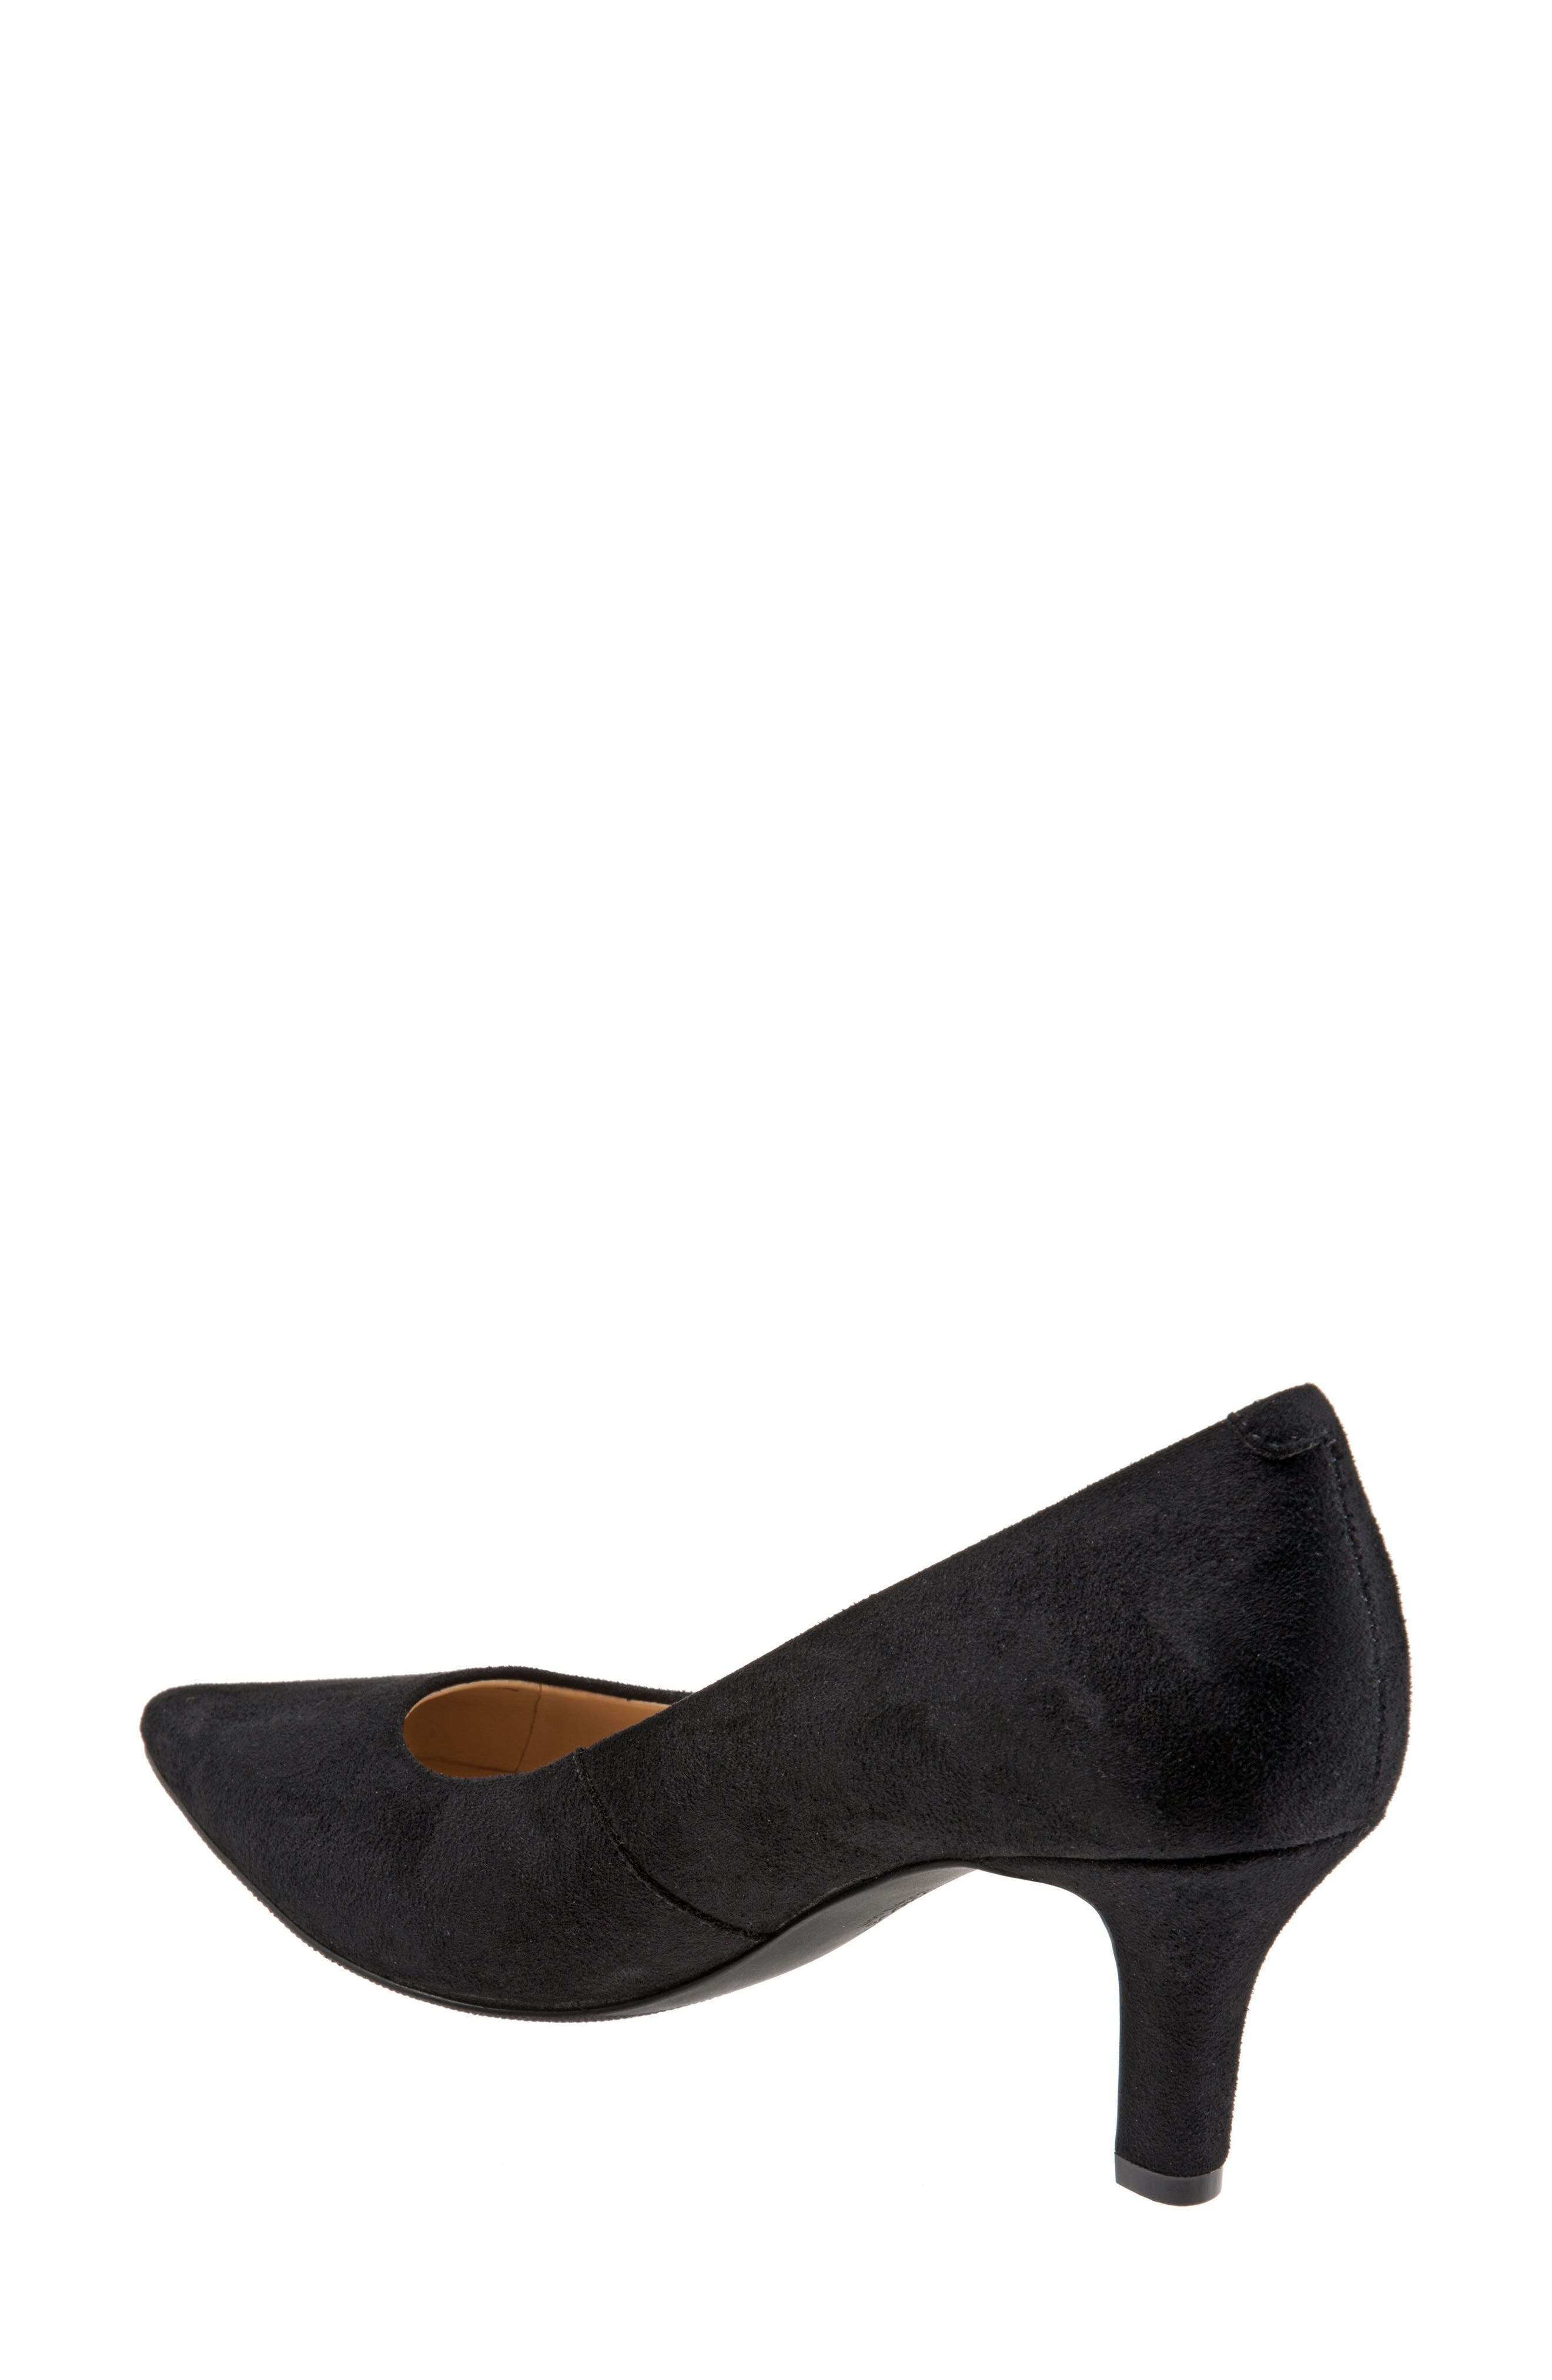 Noelle Pointy Toe Pump,                             Alternate thumbnail 2, color,                             BLACK FABRIC